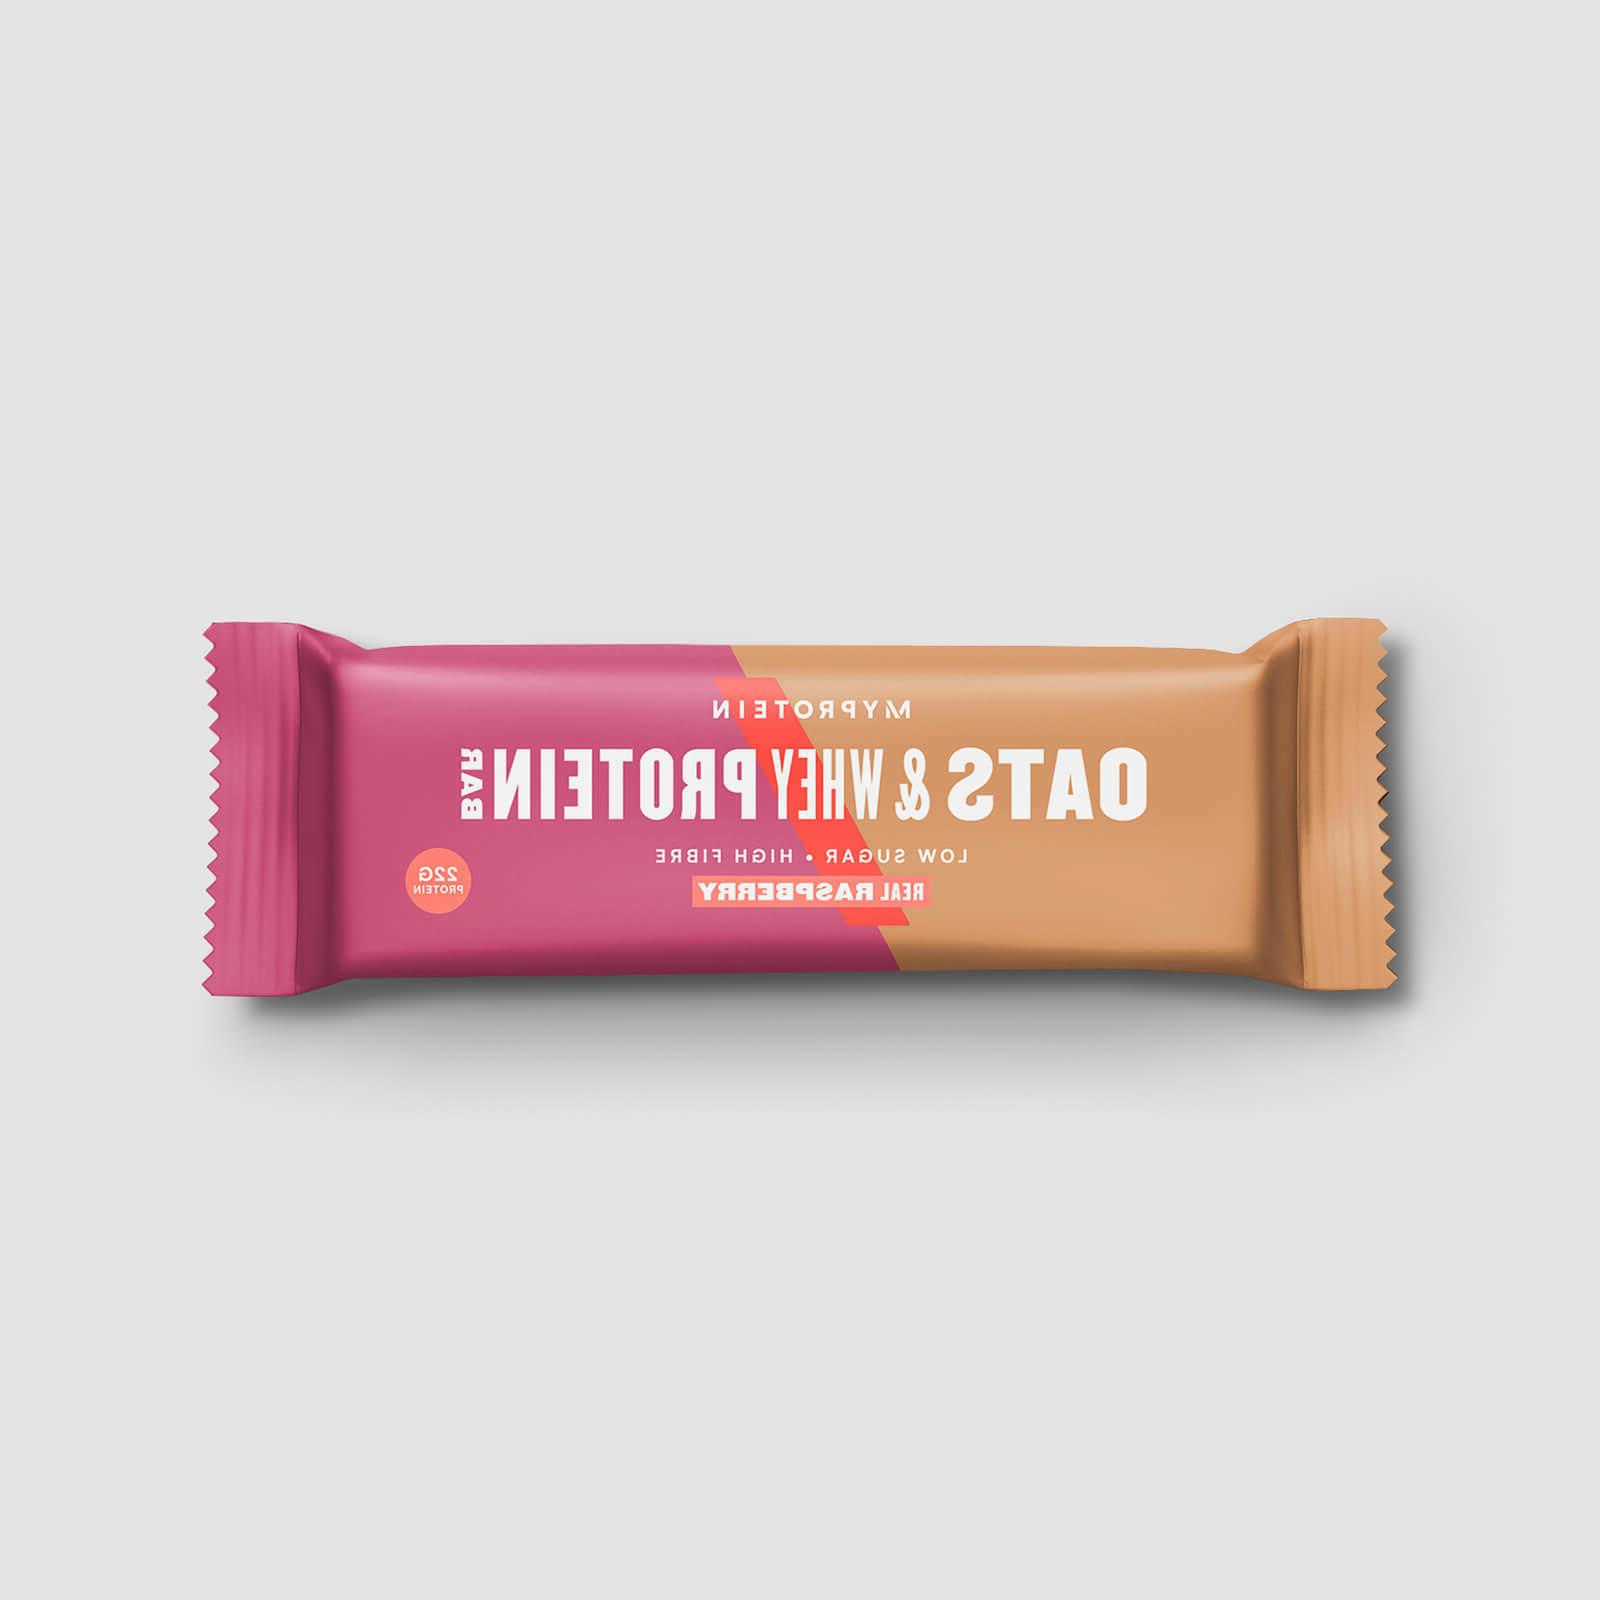 Myprotein Bars g 38g. carbohydrates